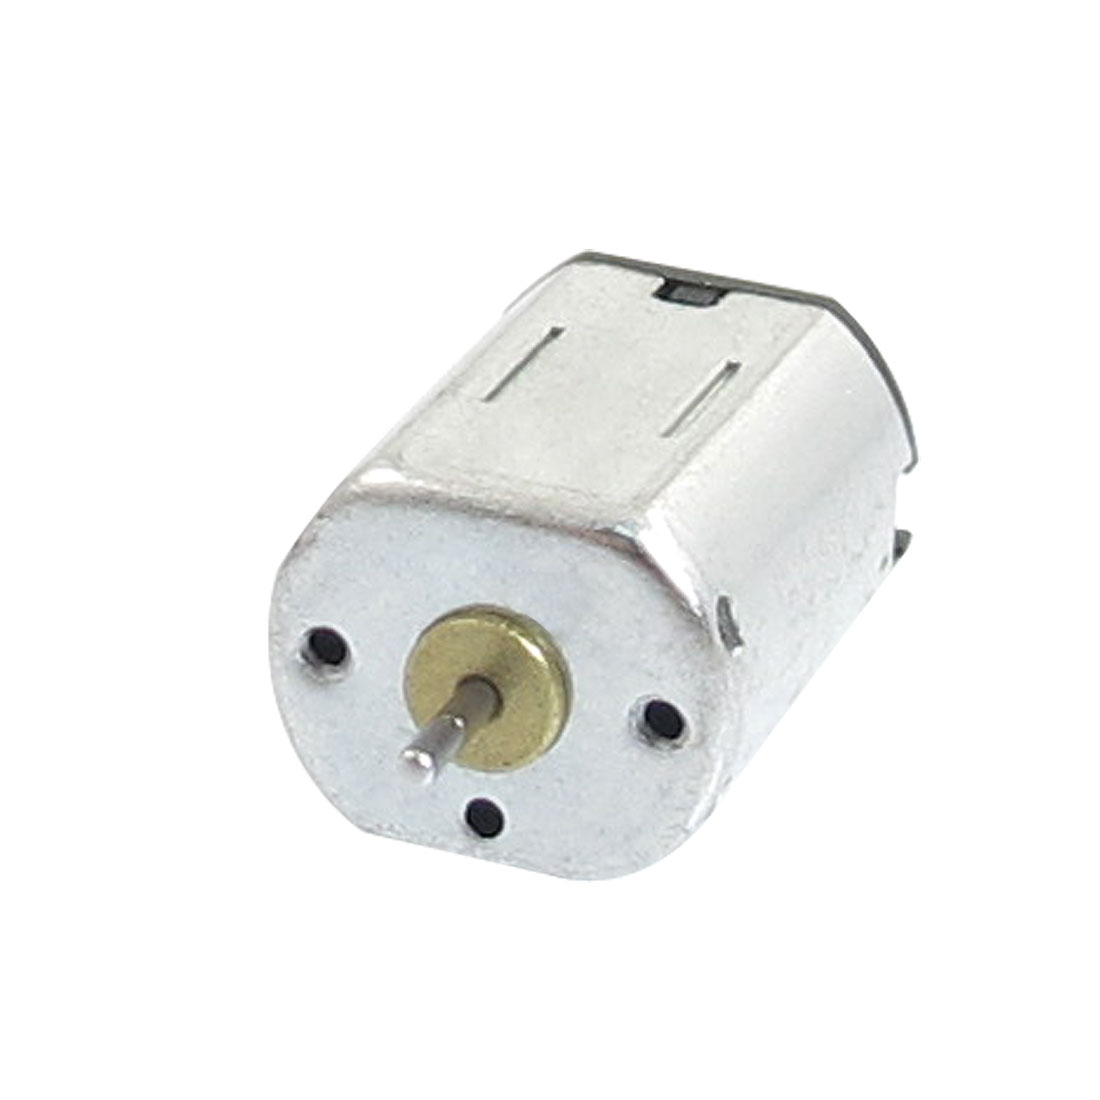 10000 RPM 6V High Torque Magnetic Electric Mini DC Motor